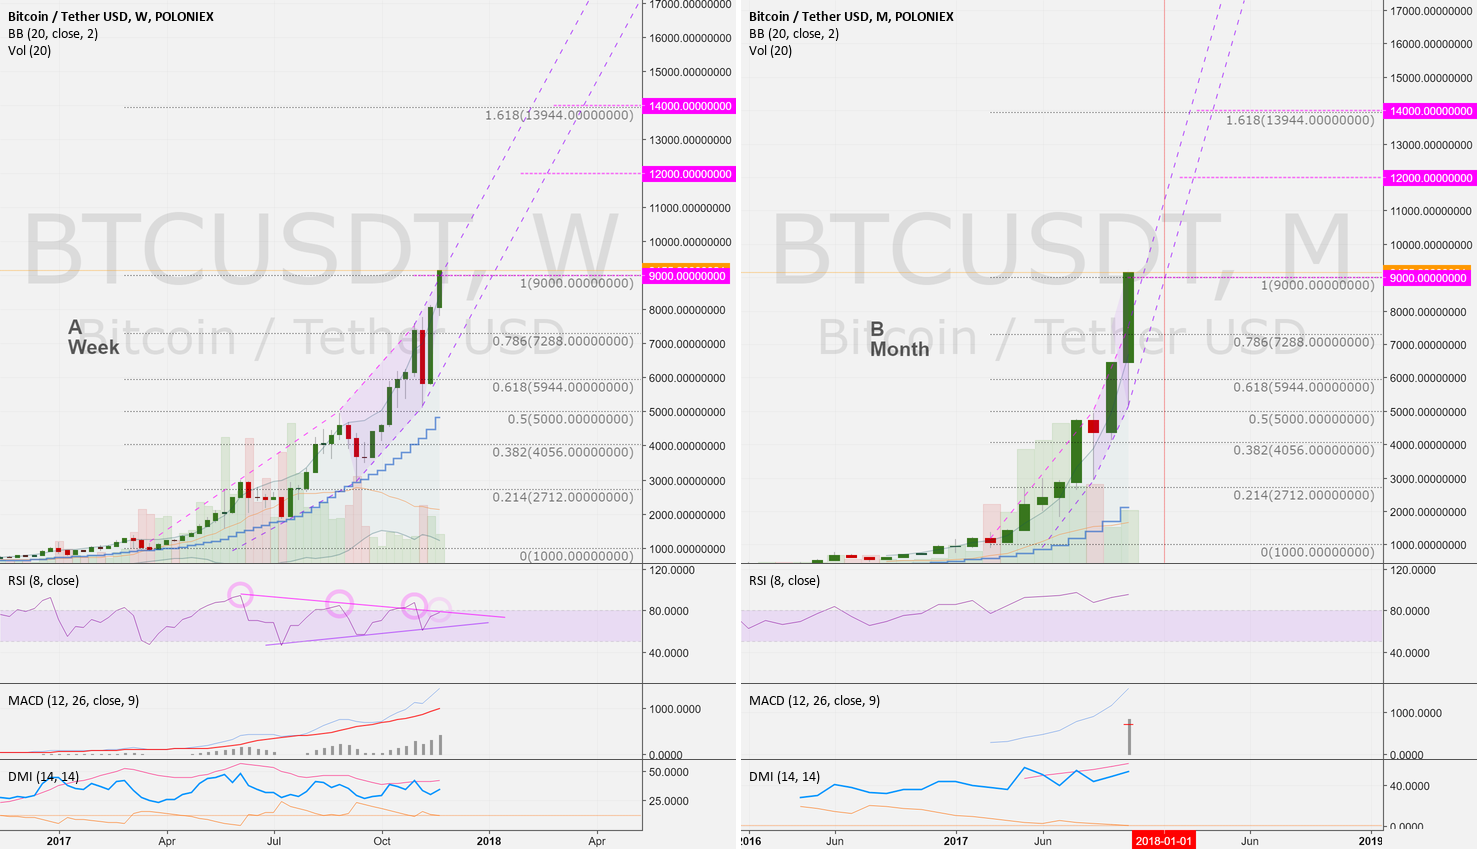 BTCUSD (W/M): Sell or buy?